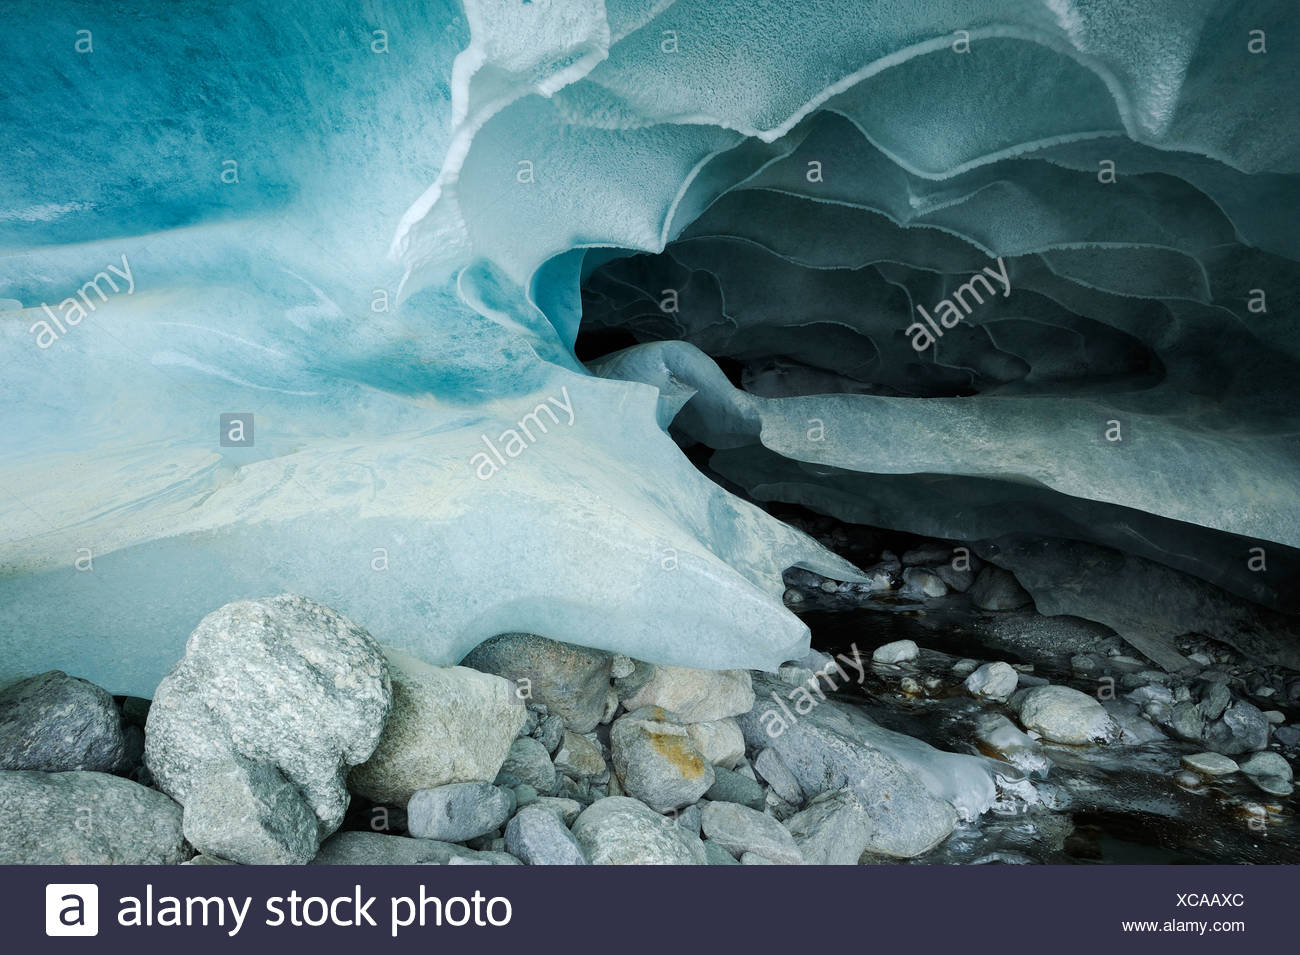 Natural ice cave in the Zinal Glacier, Zinal, Valais, Switzerland, Europe - Stock Image